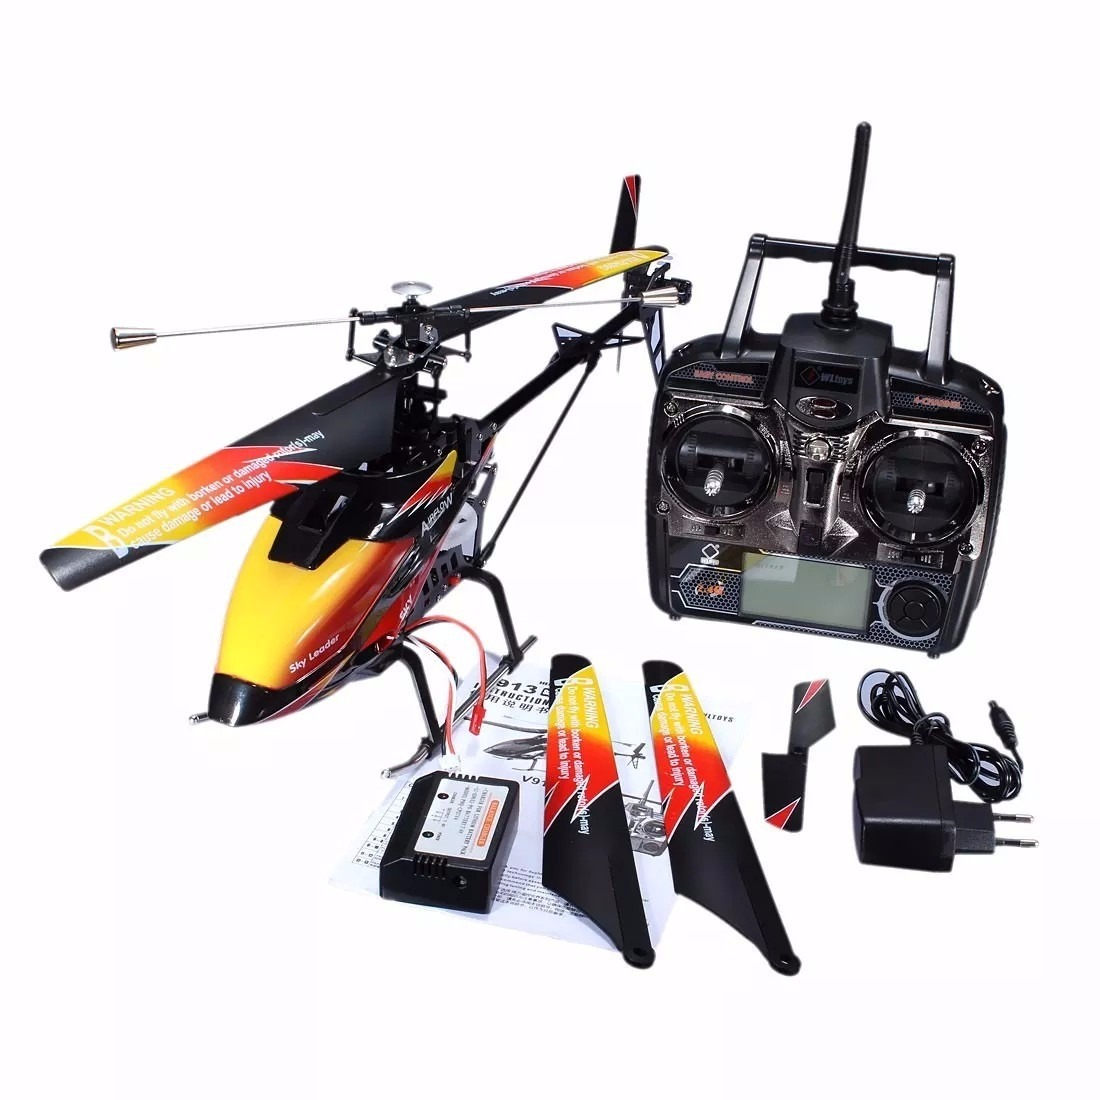 v913 helicopter with Mlb 796322453 Helicoptero V913  Pleto 70cm Controle 24ghz 4 Ch Wltoys  Jm on MLM 562732881 Engrane Principal Helicoptero Wl Toys V913  JM furthermore The Halloweens Cute Pig Nose Half Mask P 42323 as well 4 X Noctilucent Butterfly W Suction Cup Assorted Color P 24402 together with Self Inflating Whoopee Cushion P 24114 in addition Robot Dog Educational Toys Smart Electric Kids Toys P 75190.